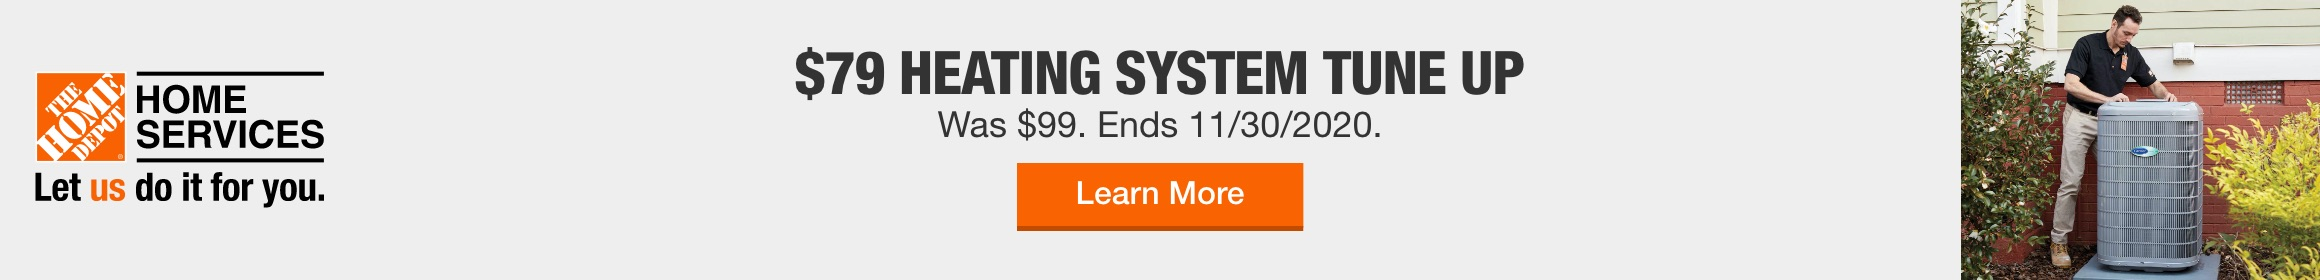 $79 Heating System Tune Up